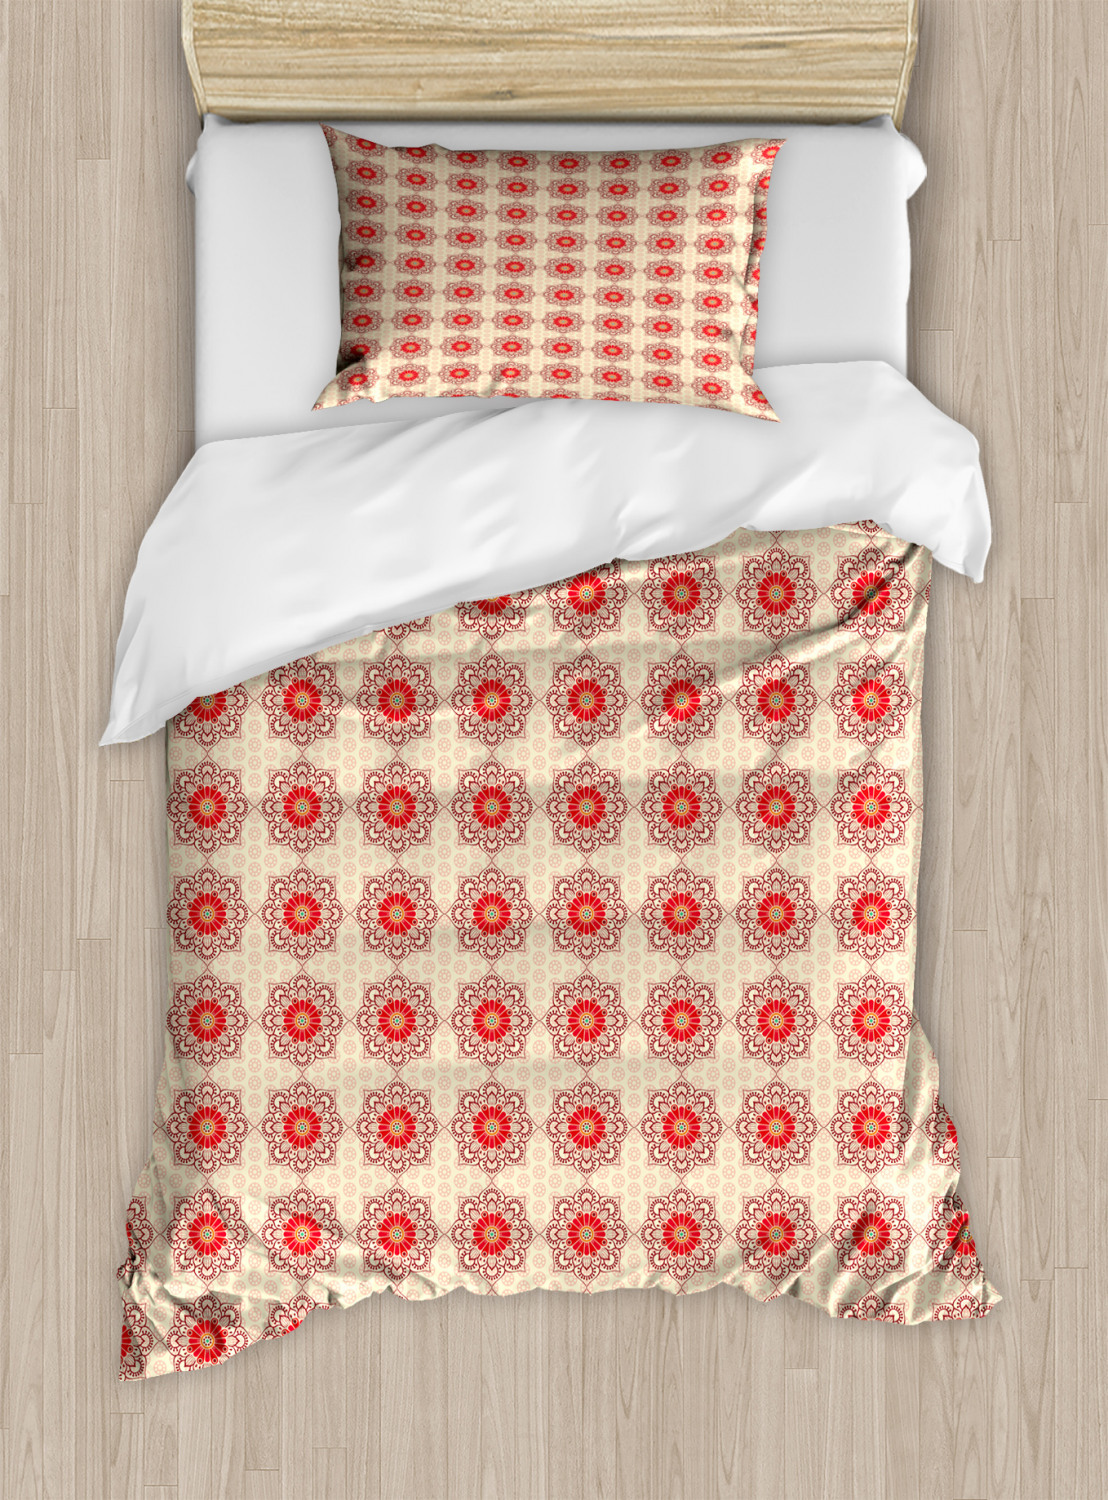 Timeless-Oriental-Duvet-Cover-Set-Twin-Queen-King-Sizes-with-Pillow-Shams thumbnail 76